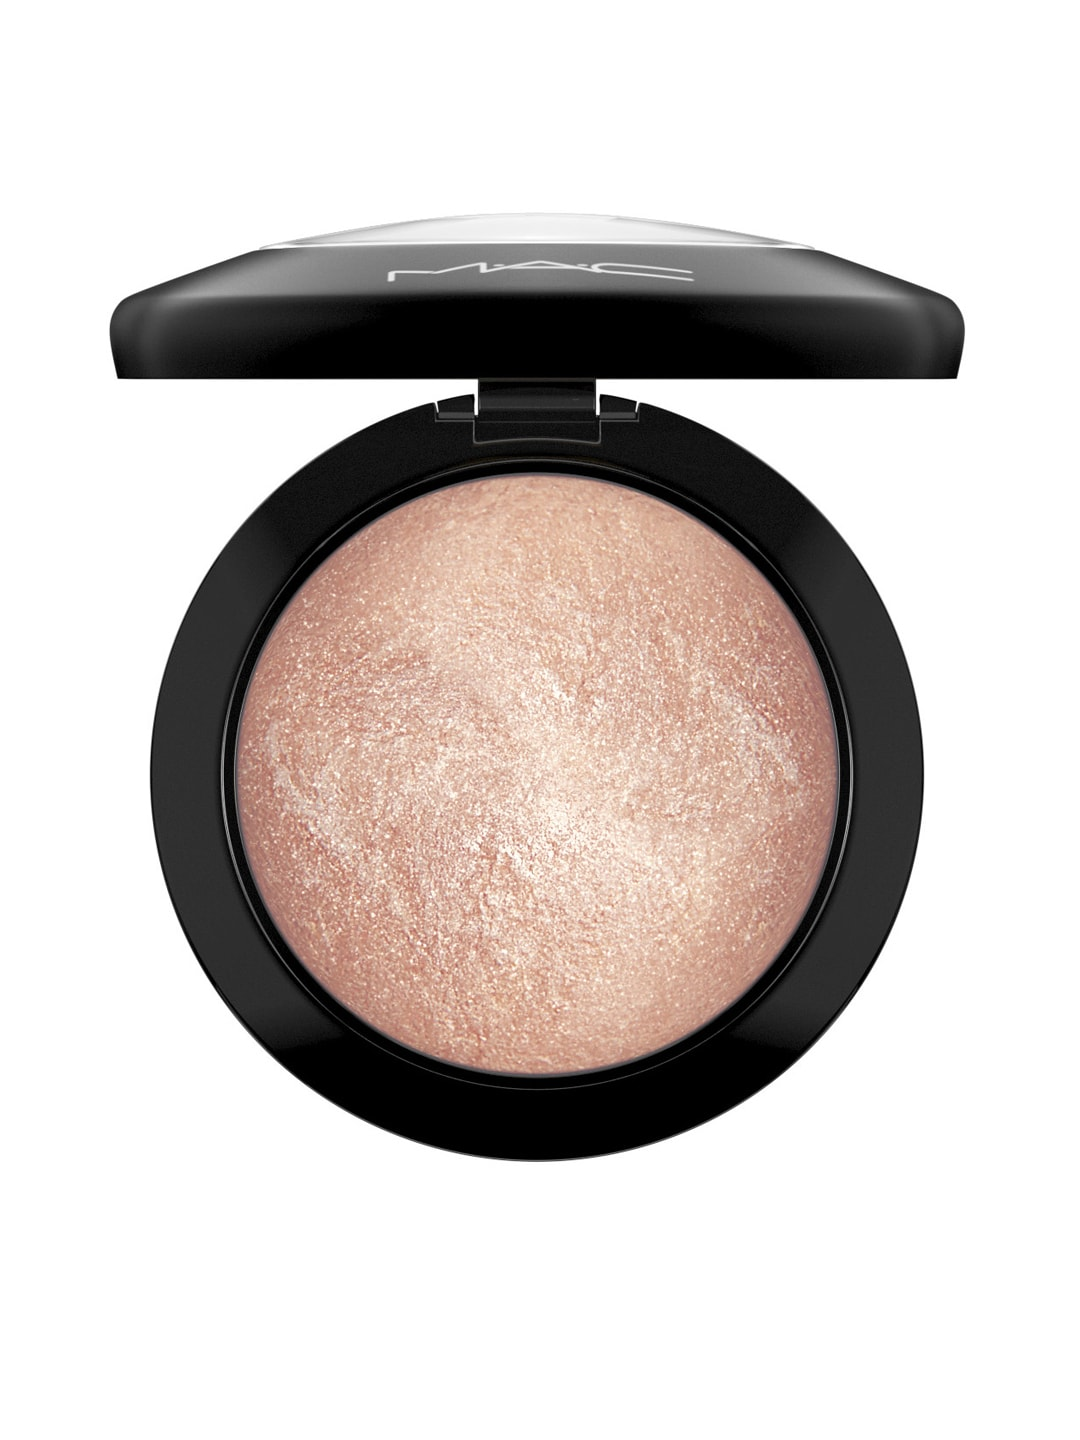 M.A.C Soft & Gentle Mineralize Skinfinish Compact image